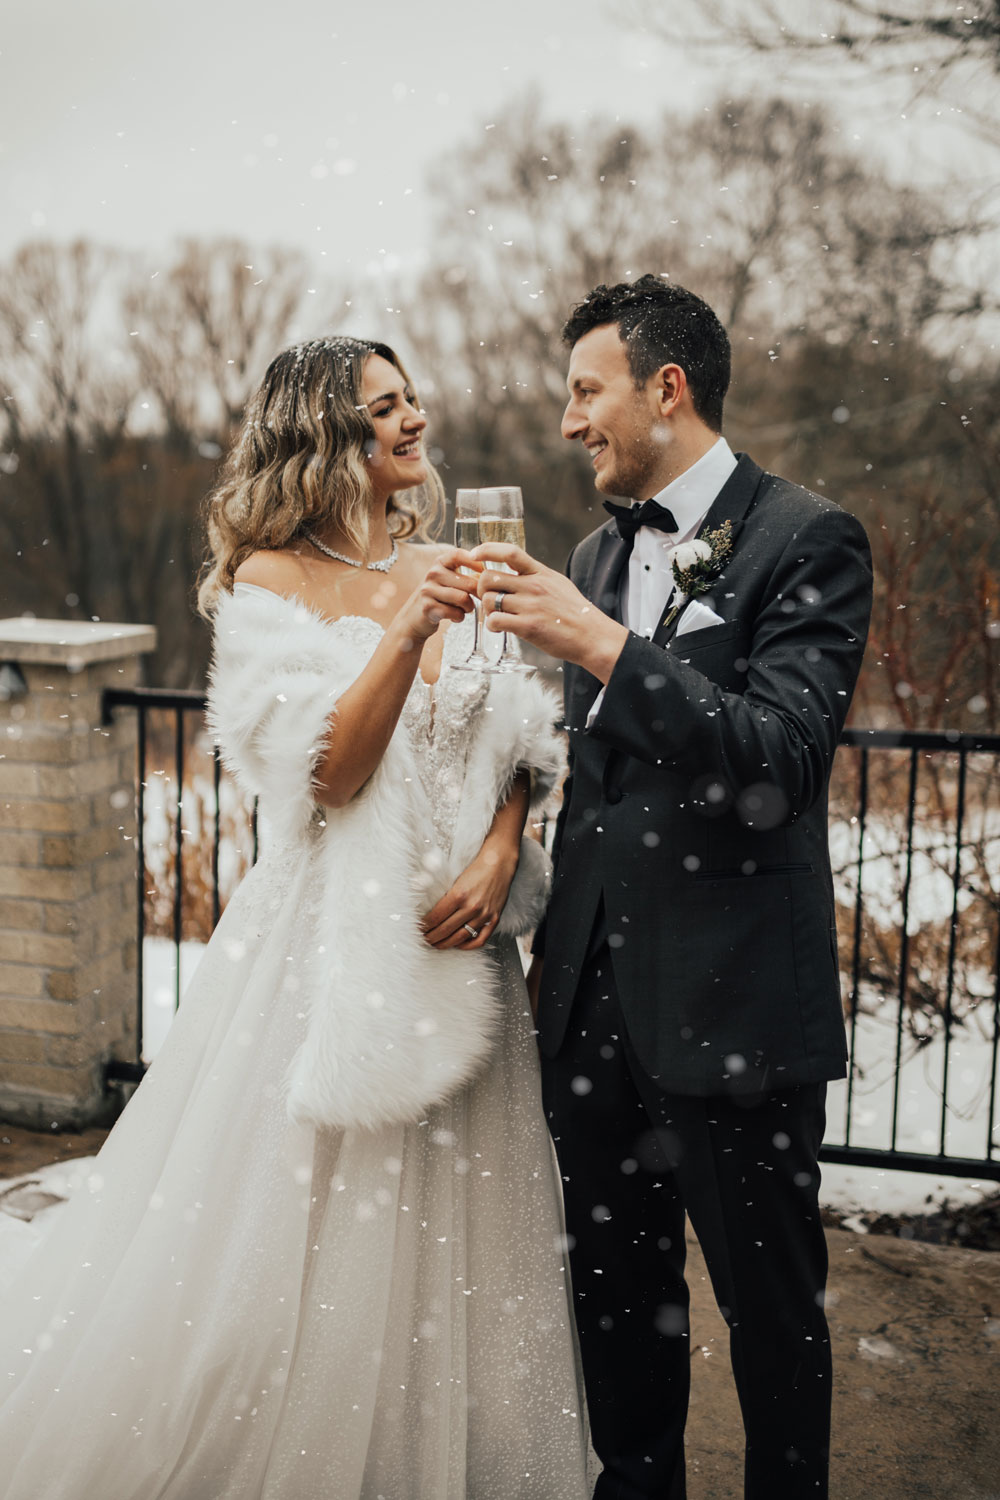 Everything You Need to Know About Wedding Videography - Bride and Groom